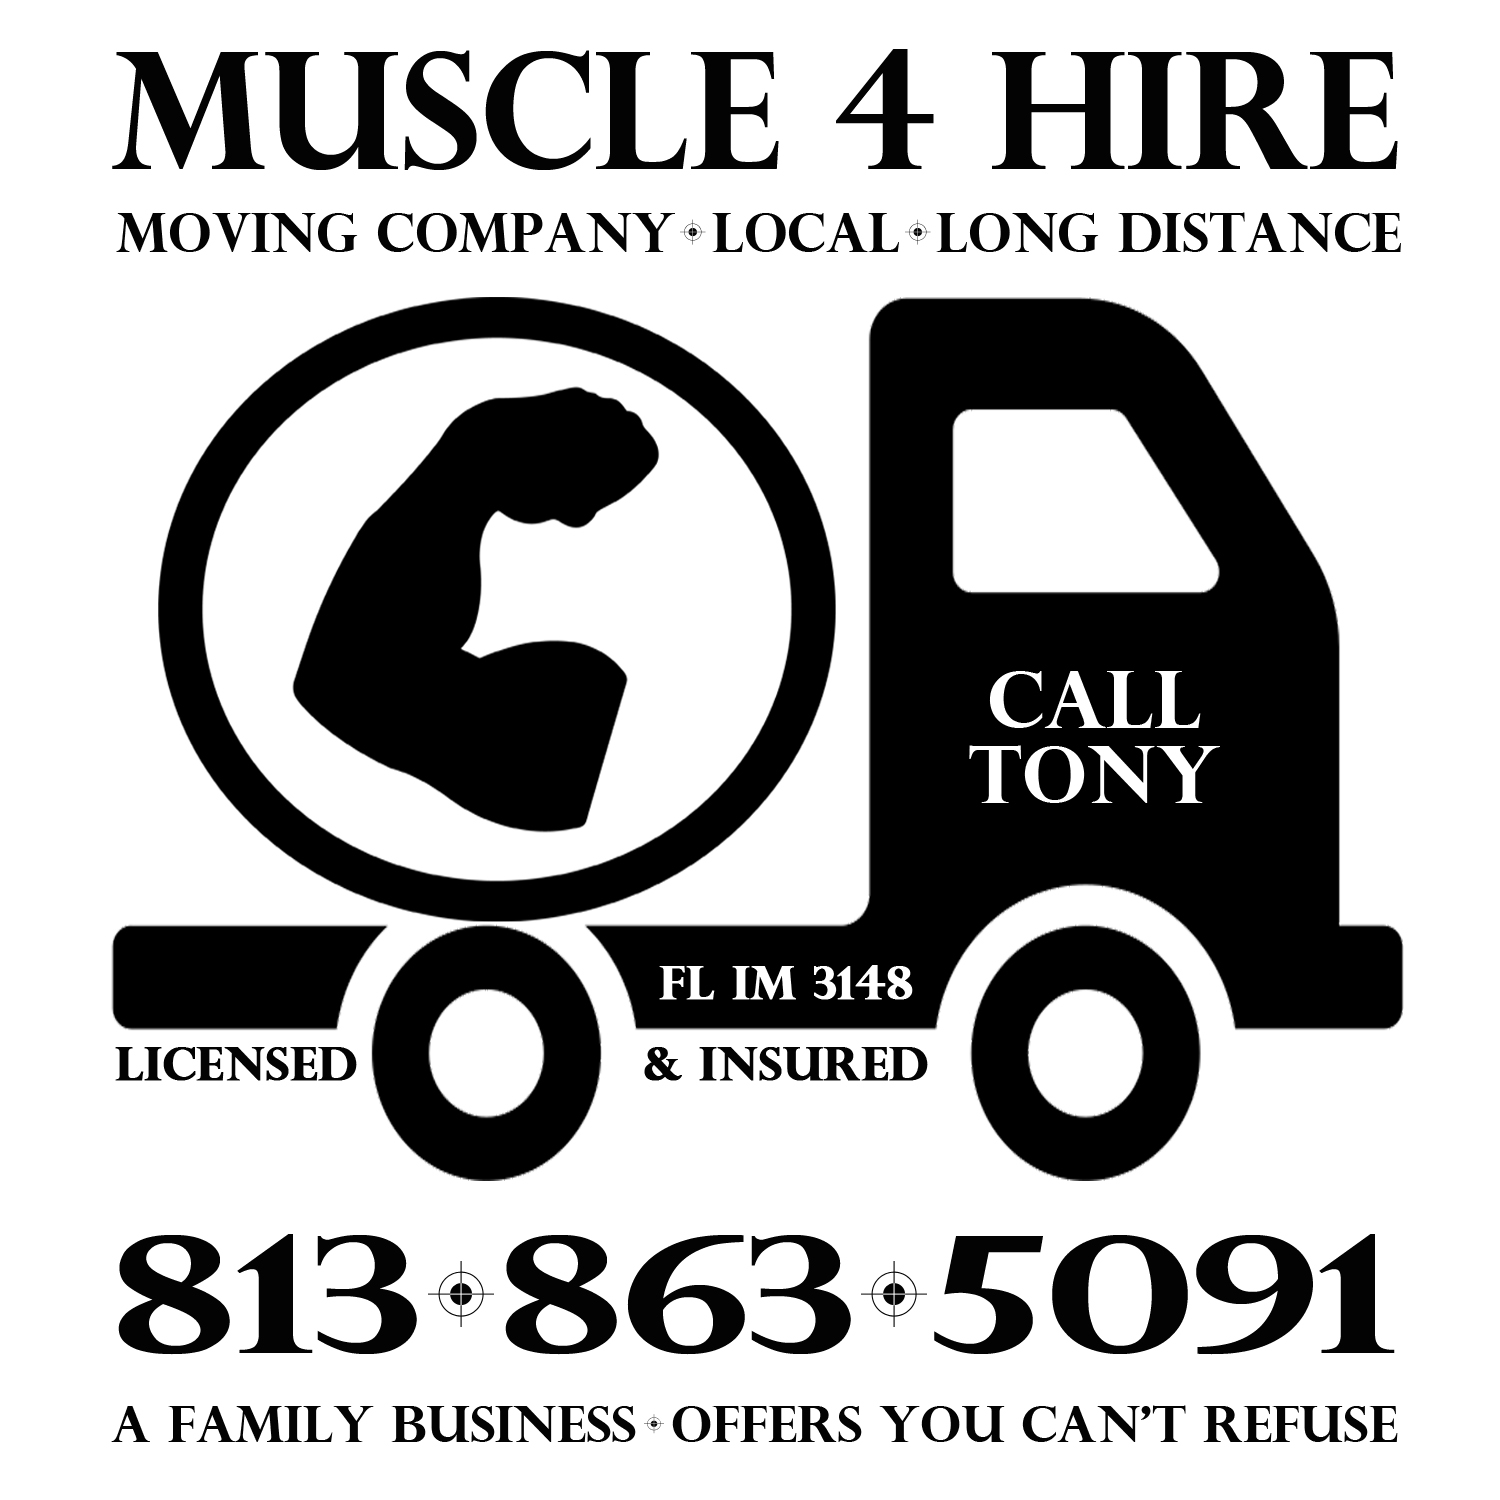 Muscle 4 Hire Moving, LLC – Licensed and Insured